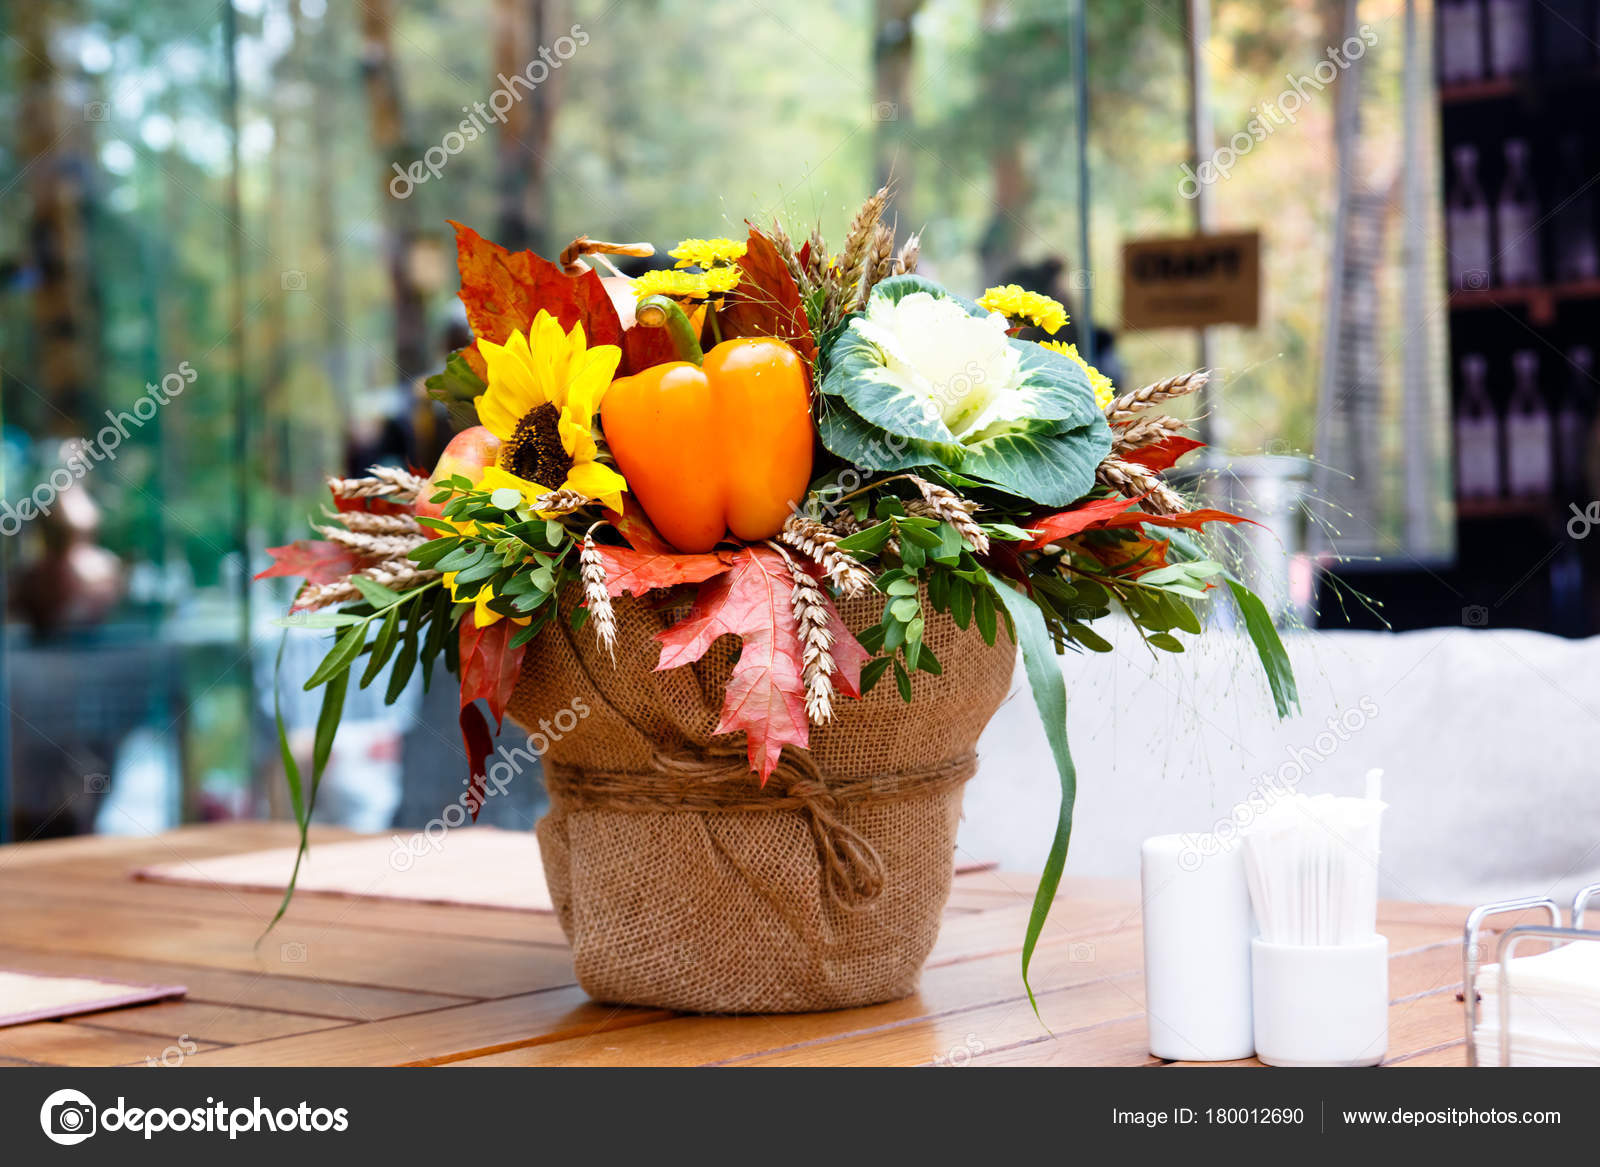 Mazzo Di Fiori E Verdure.A Bouquet Of Flowers With Vegetables And Fruit Stock Photo